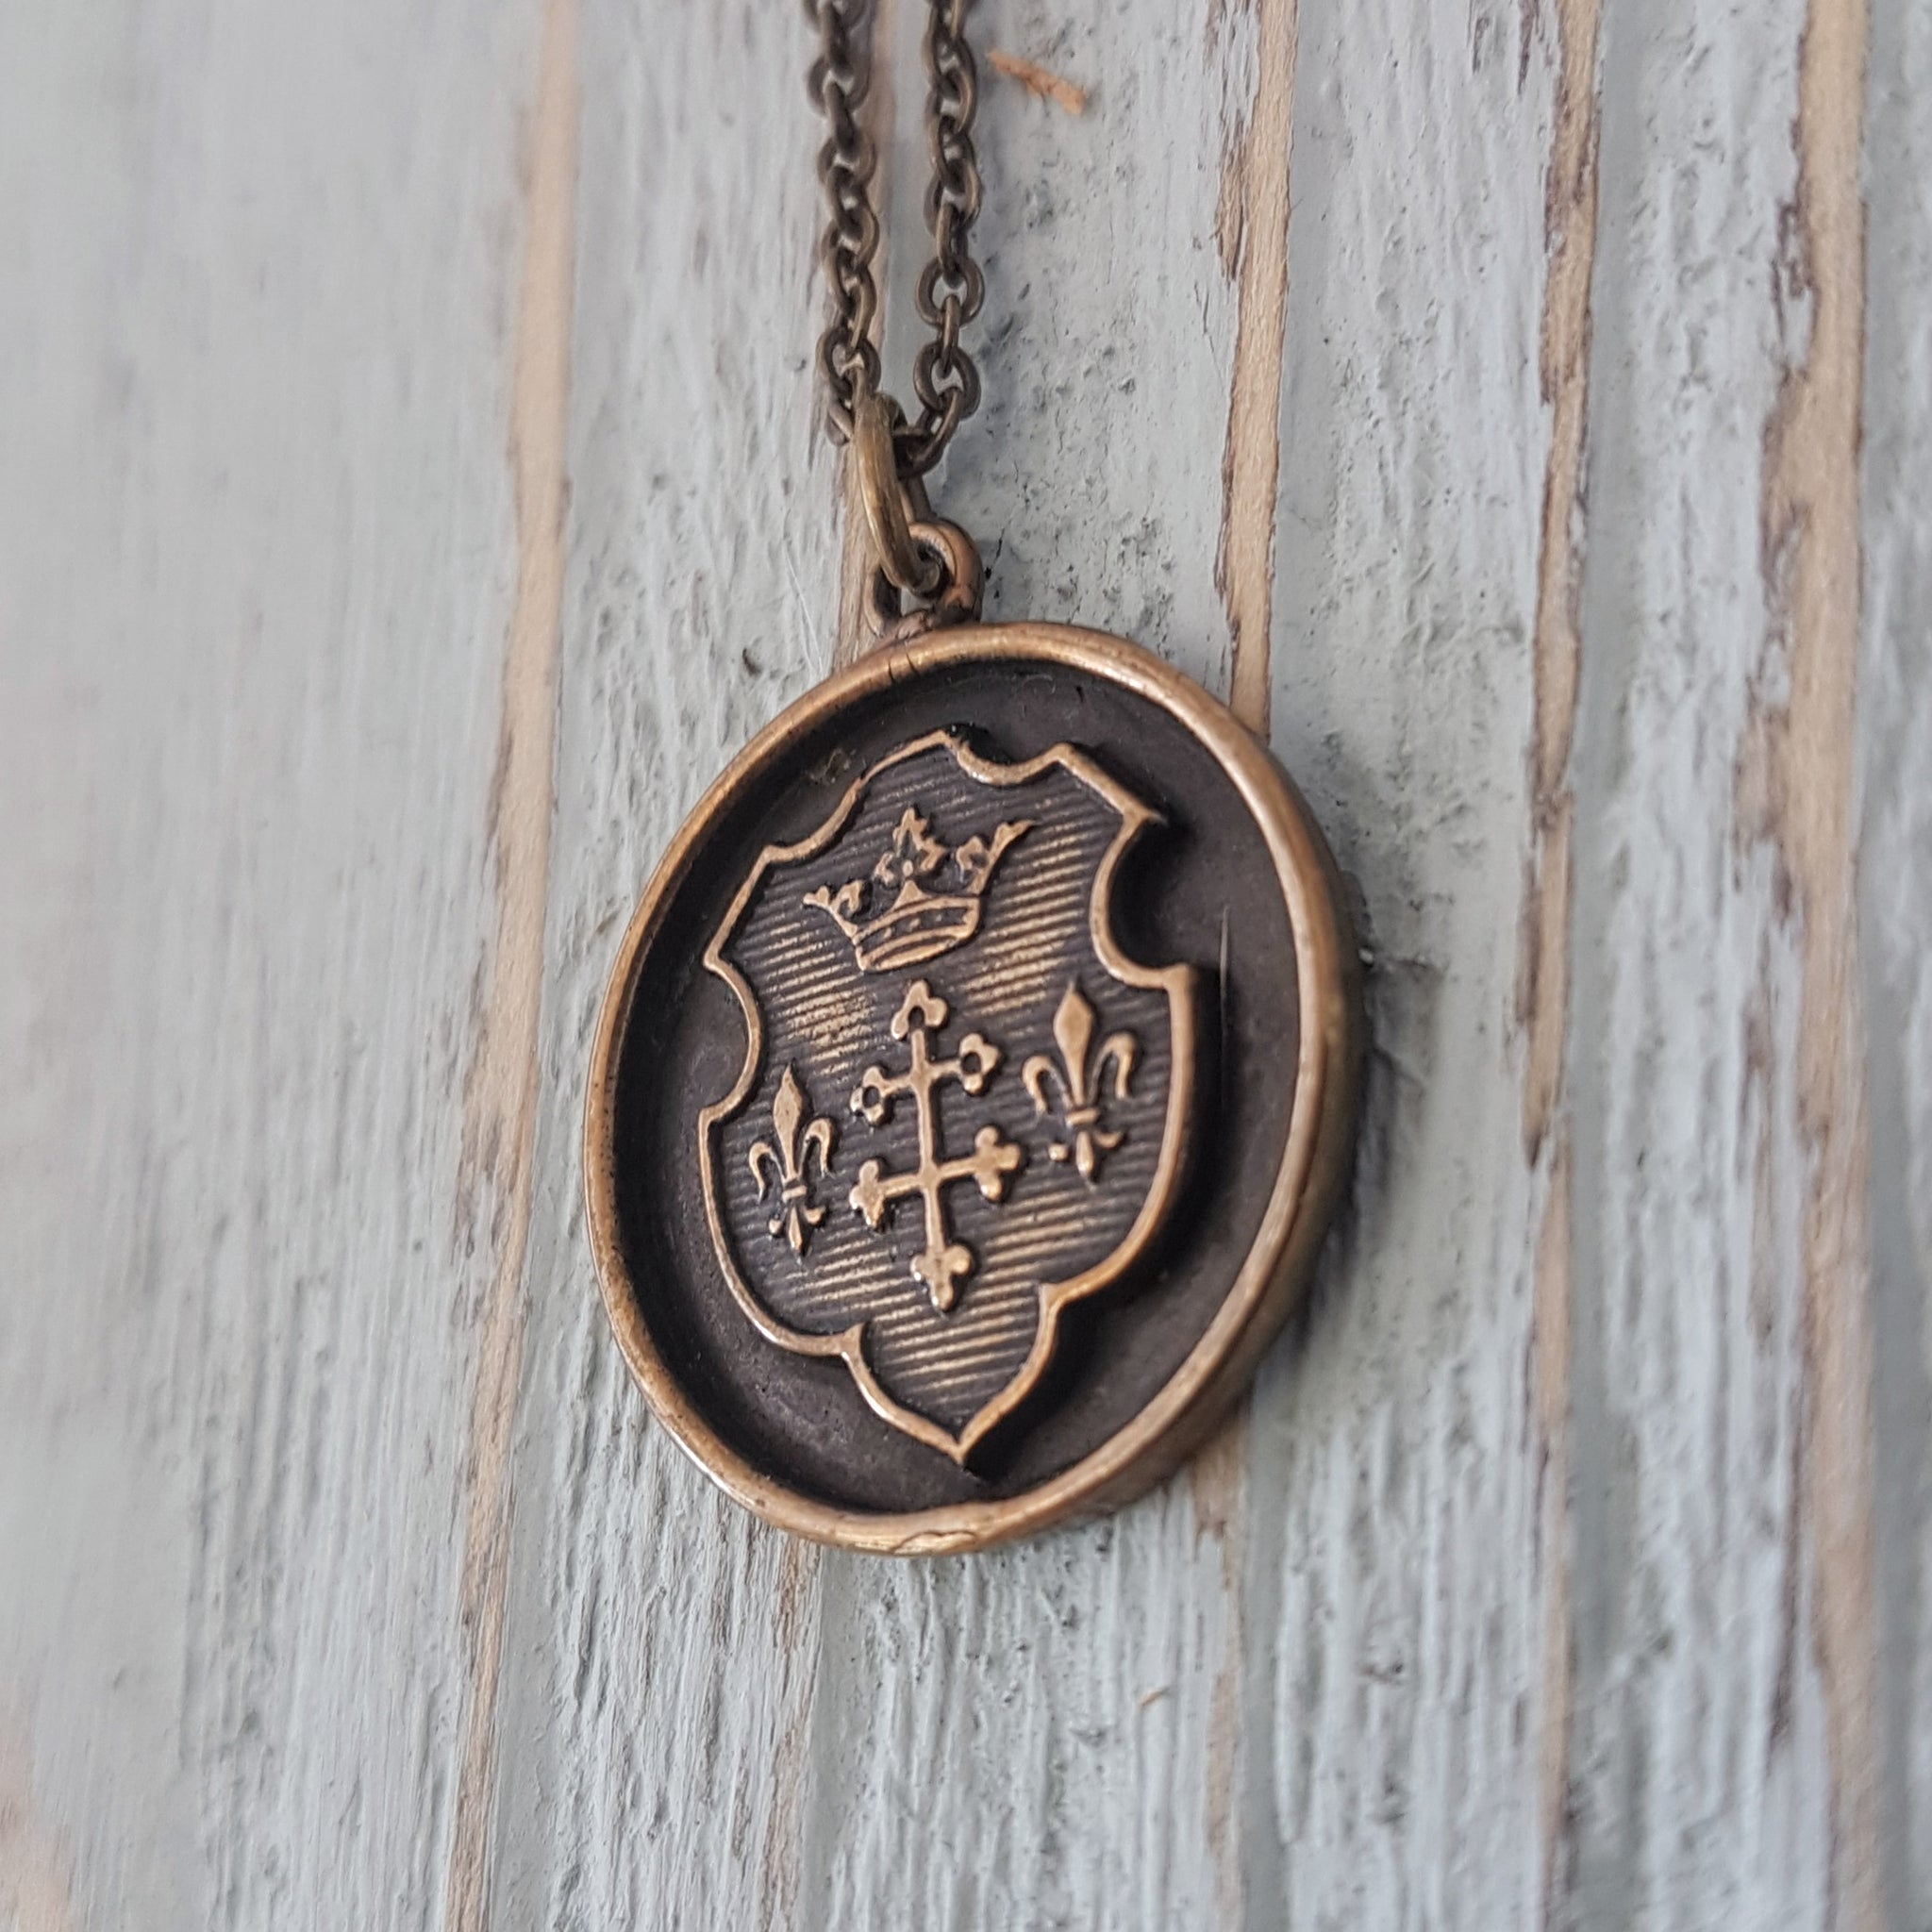 Coat of Arms Wax Seal Necklace - Gwen Delicious Jewelry Designs